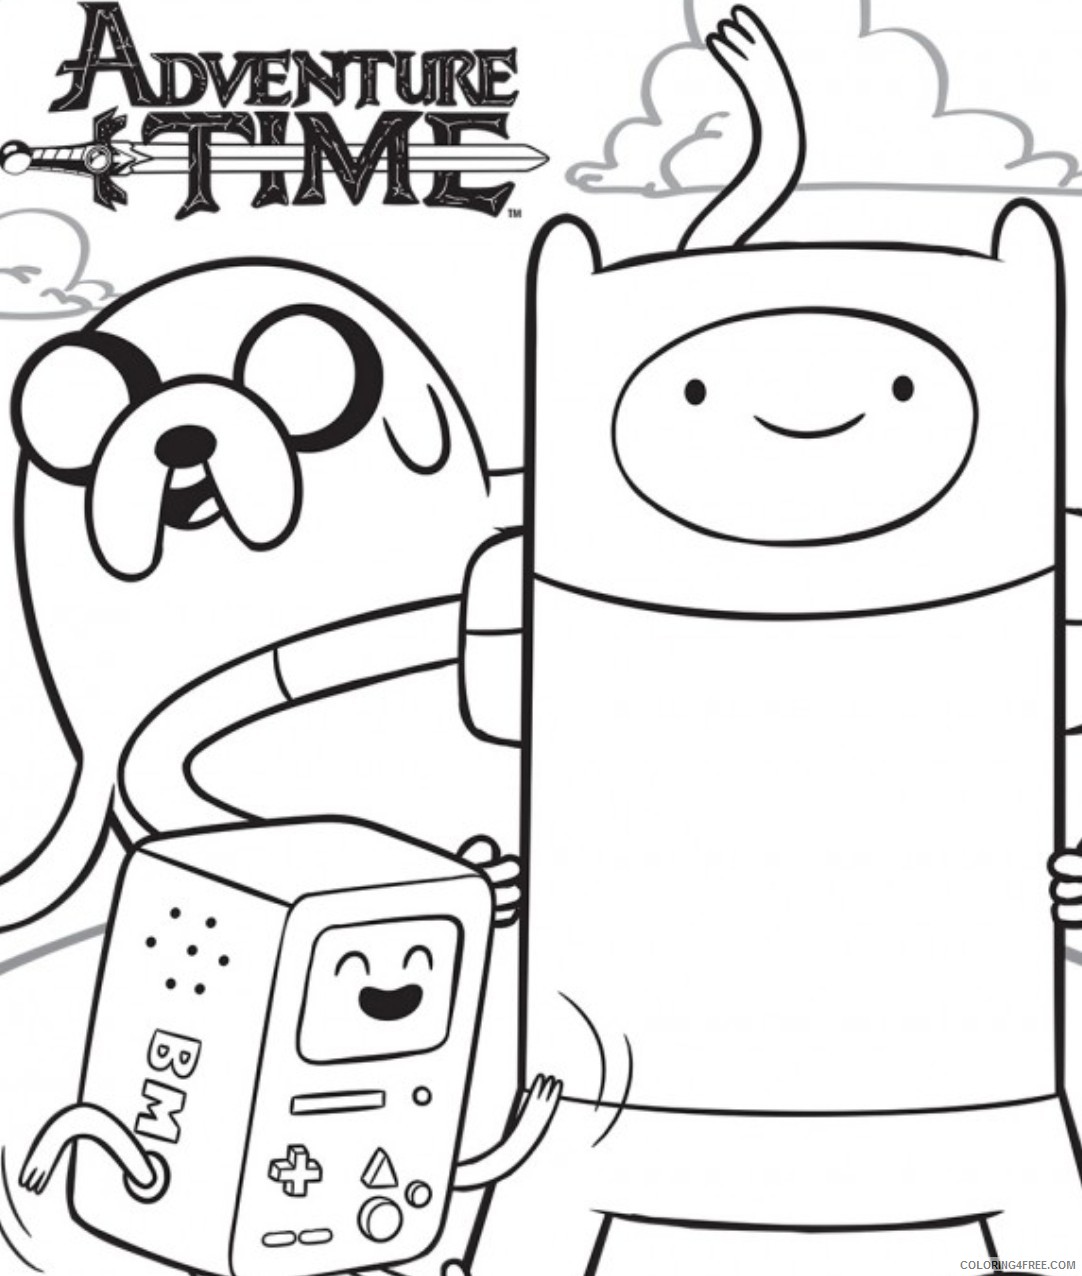 adventure time coloring pages to print Coloring4free